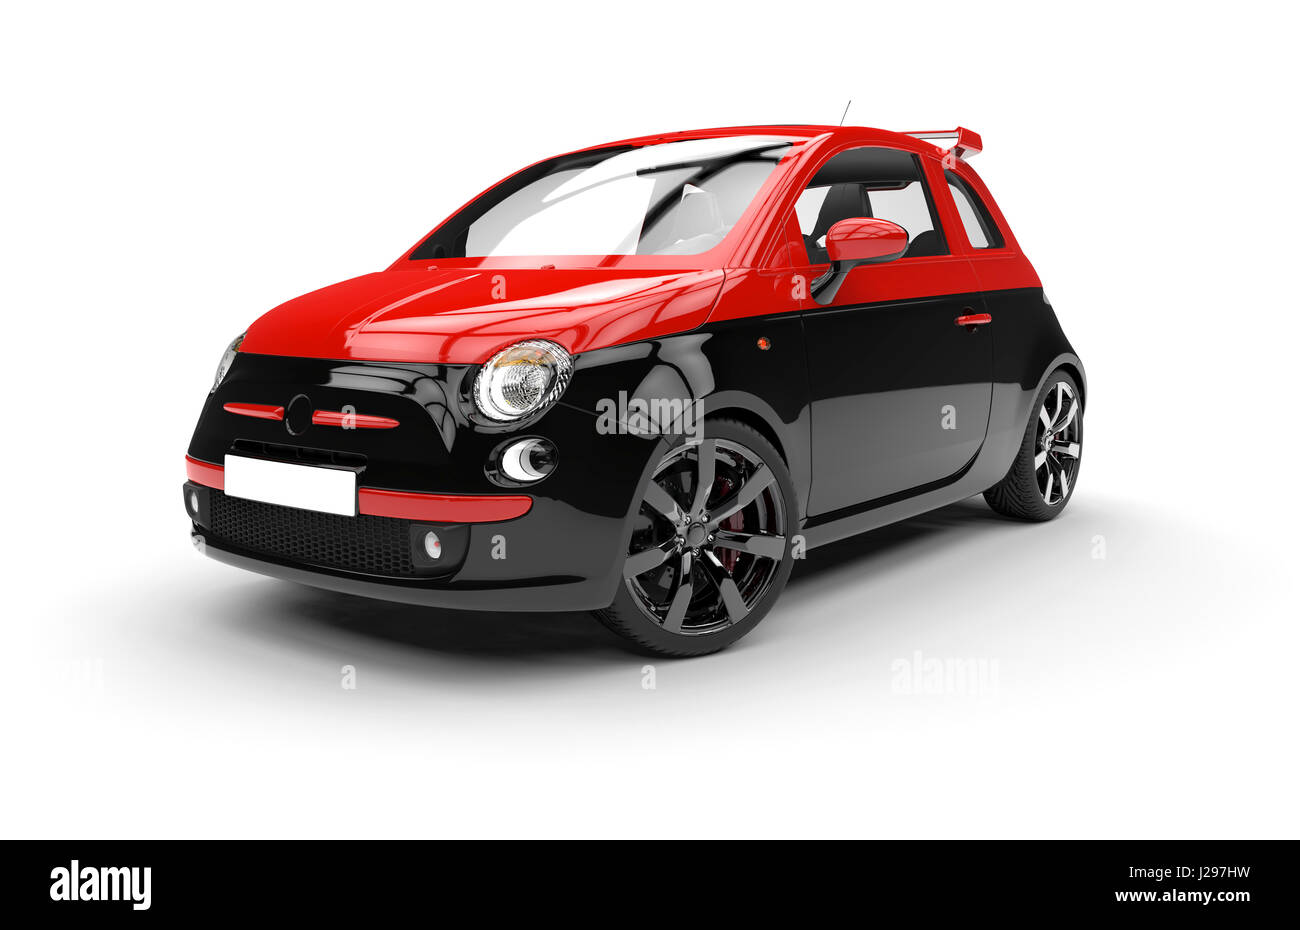 Front of a generic red and black city car isolated on a white background - Stock Image